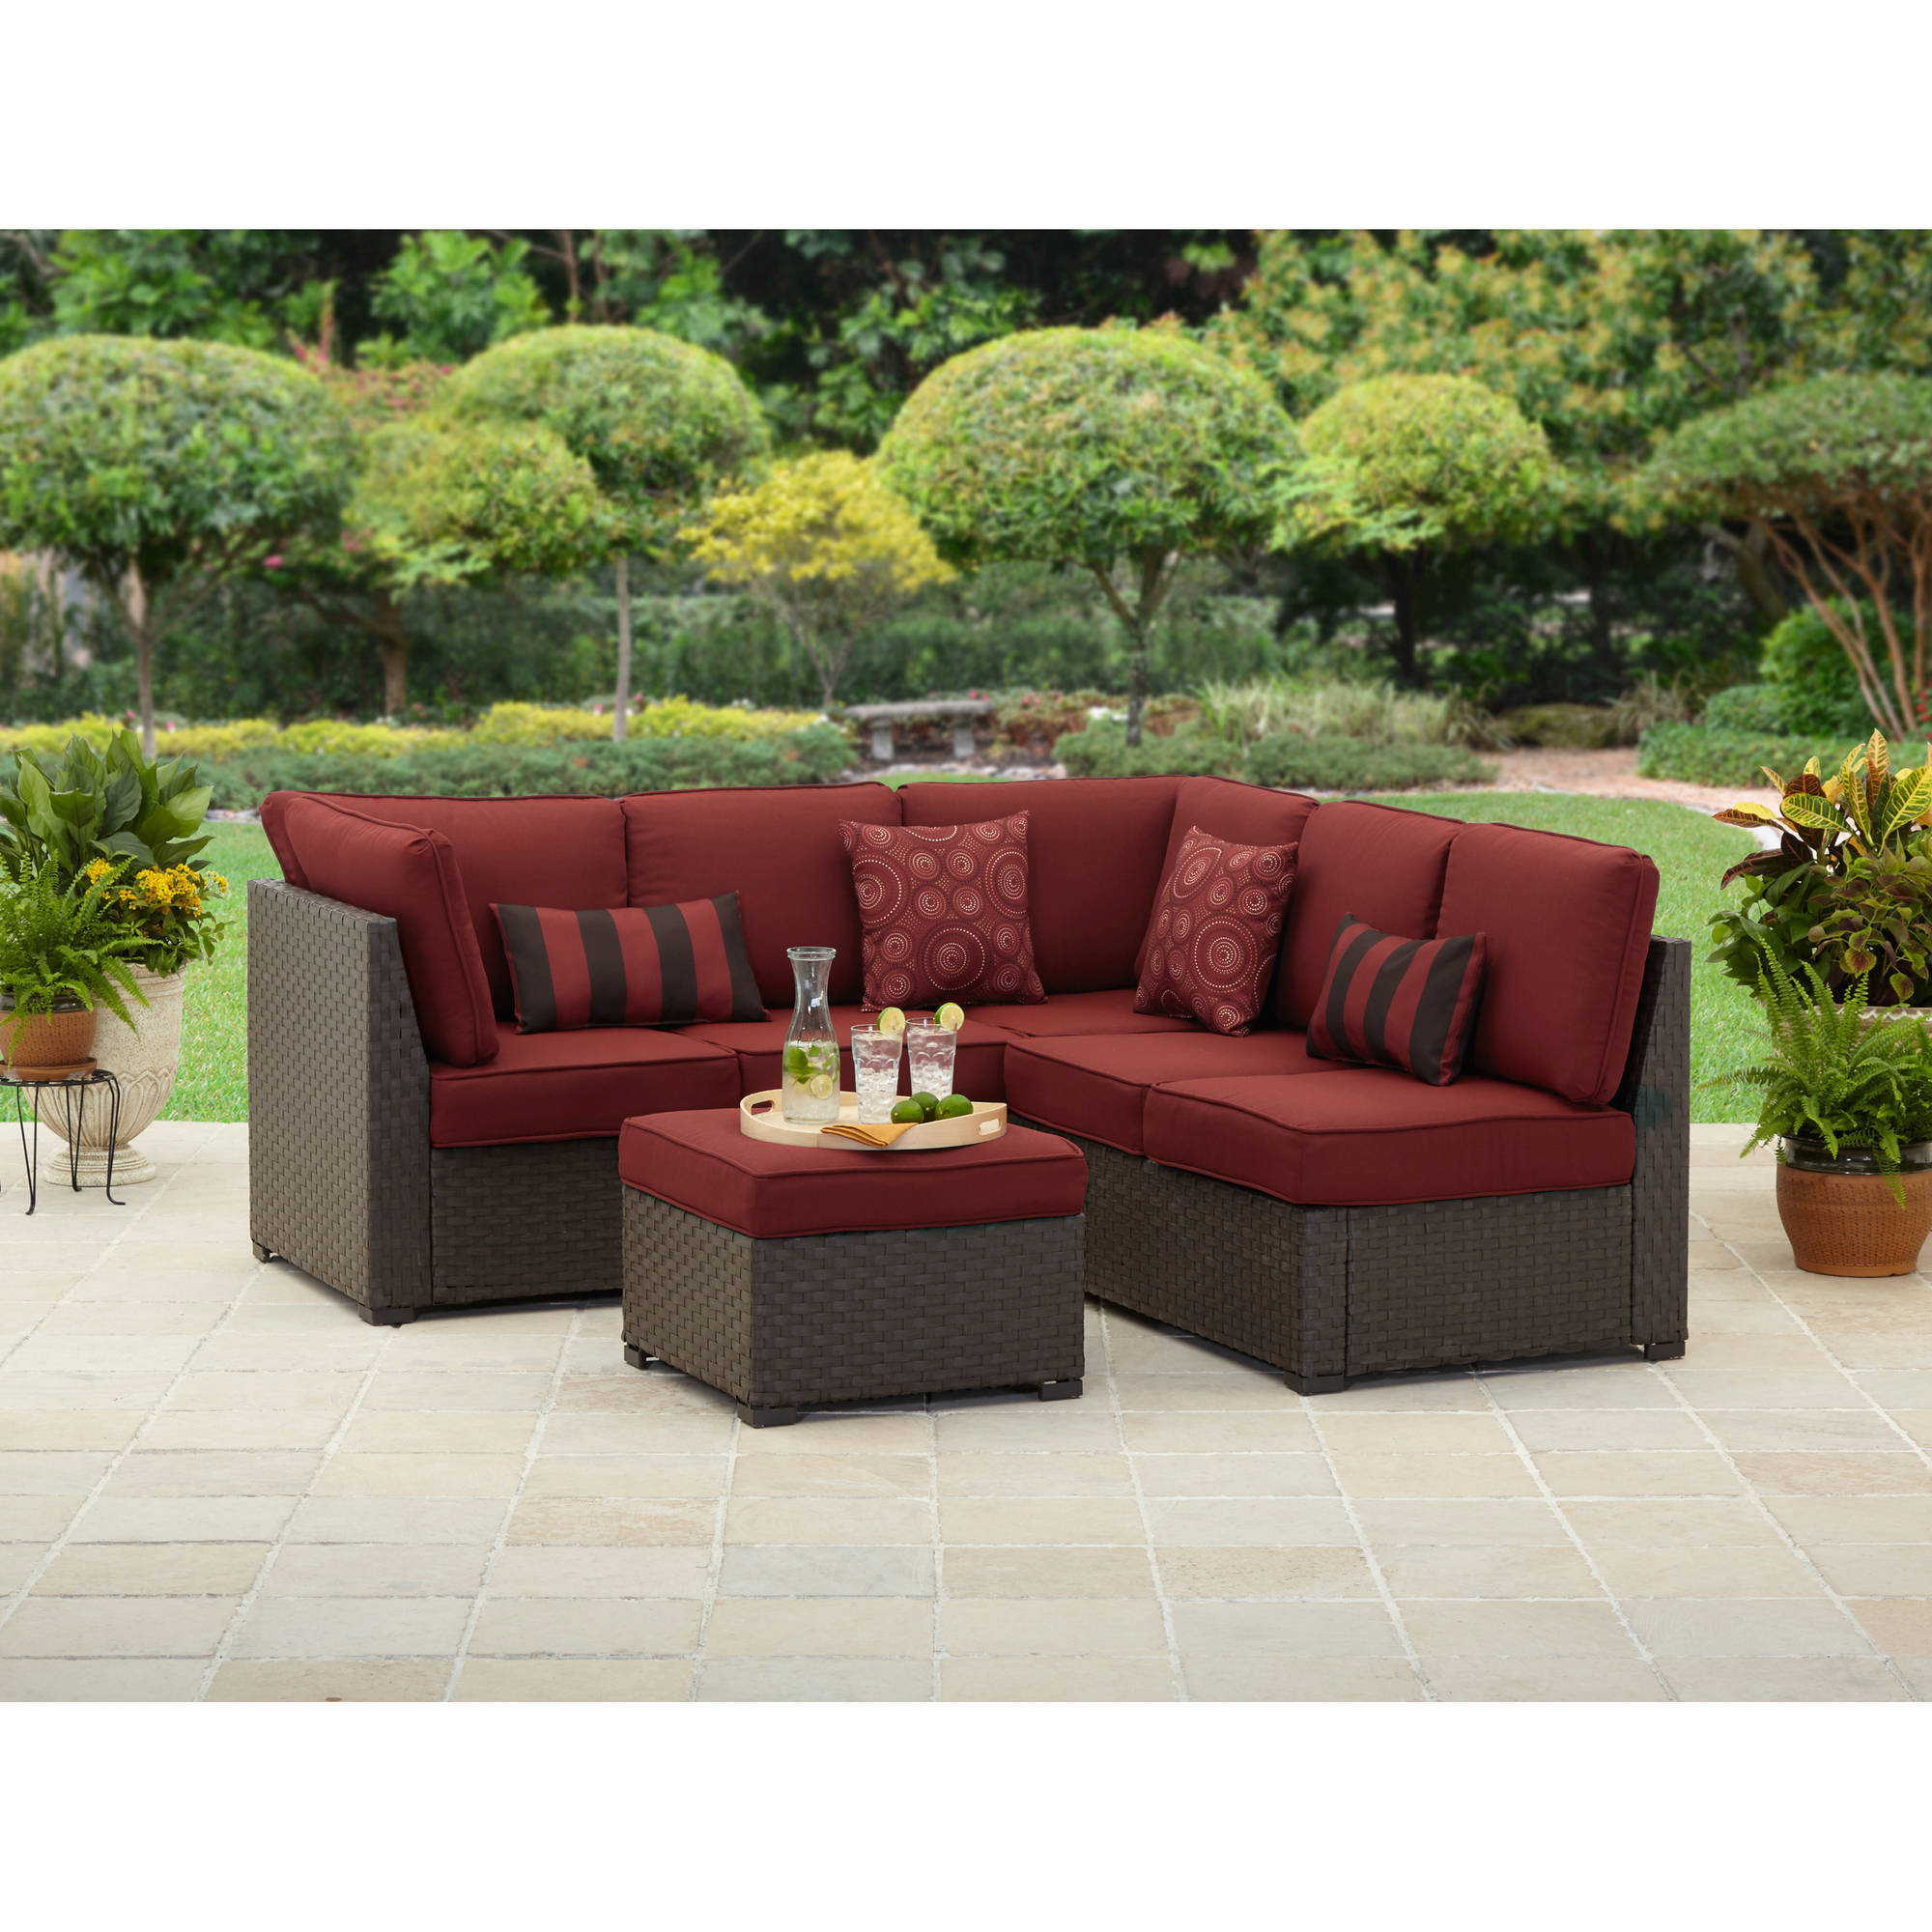 better homes and gardens rush valley 3 piece outdoor sectional sofa set seats 5 walmartcom - Garden Furniture 3 Piece